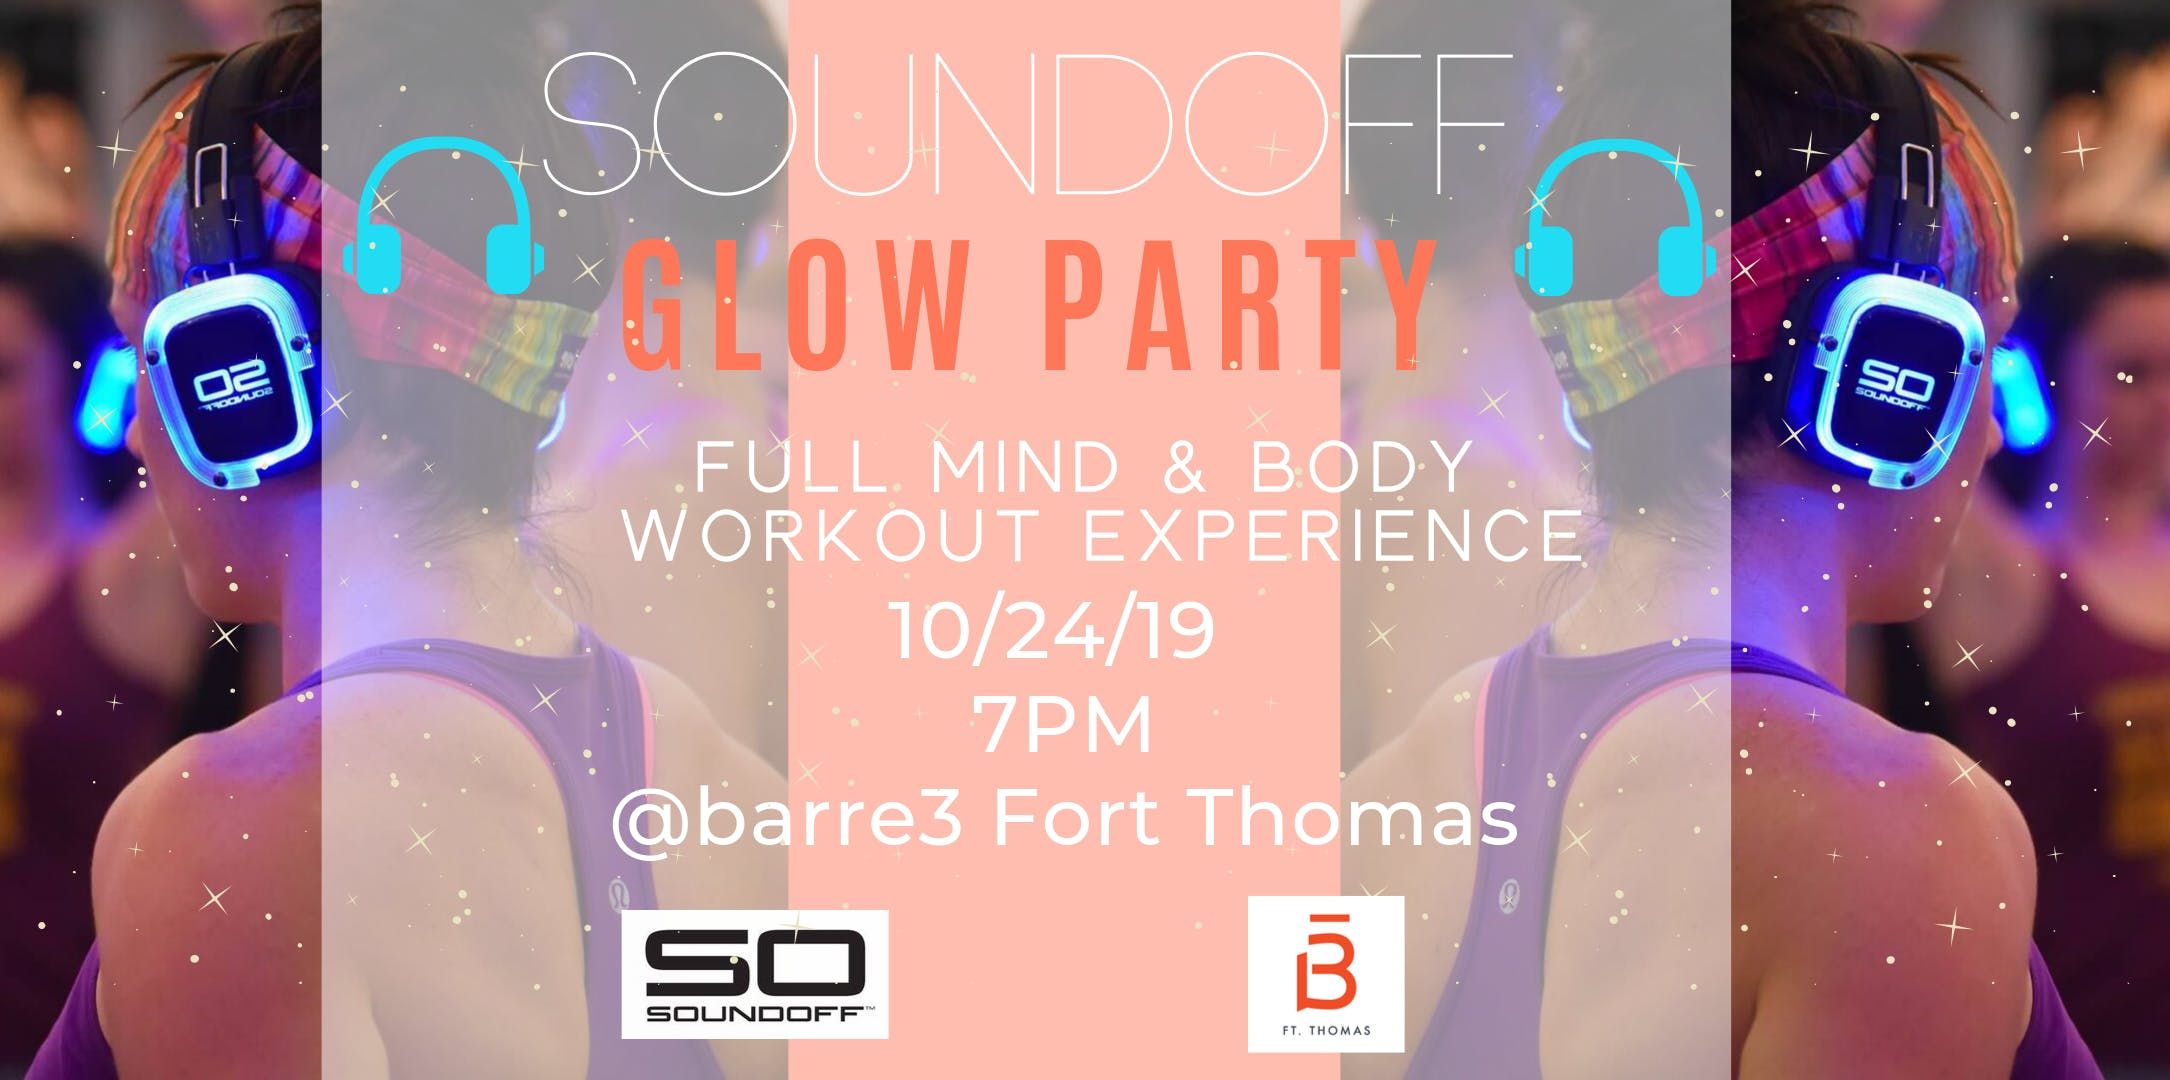 Sound Off Glow Party at the Barre with barre3 Fort Thomas